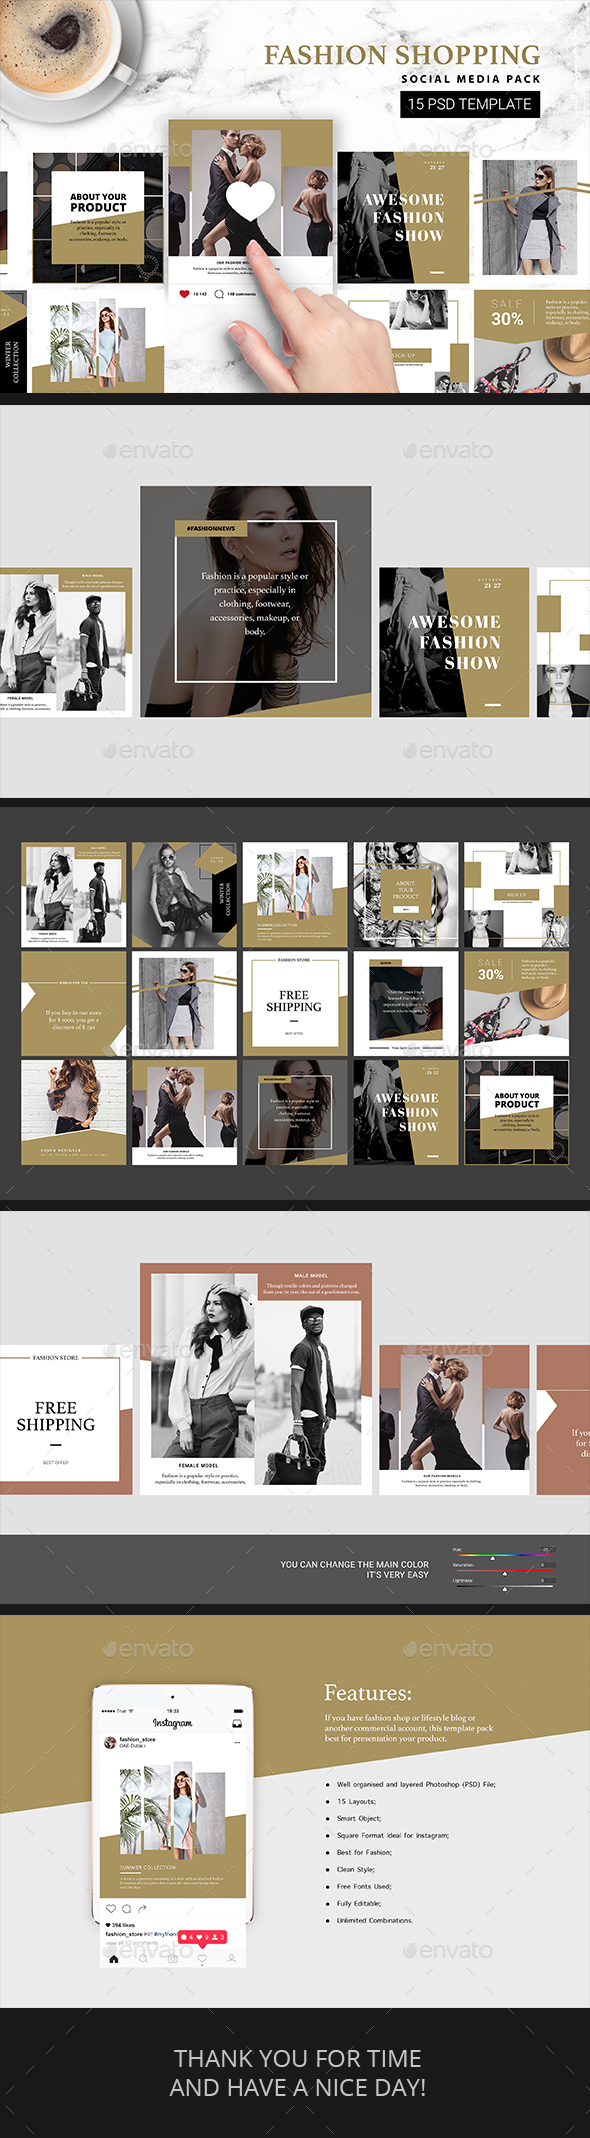 Fashion Shopping Instagram Template - Social Media Web Elements